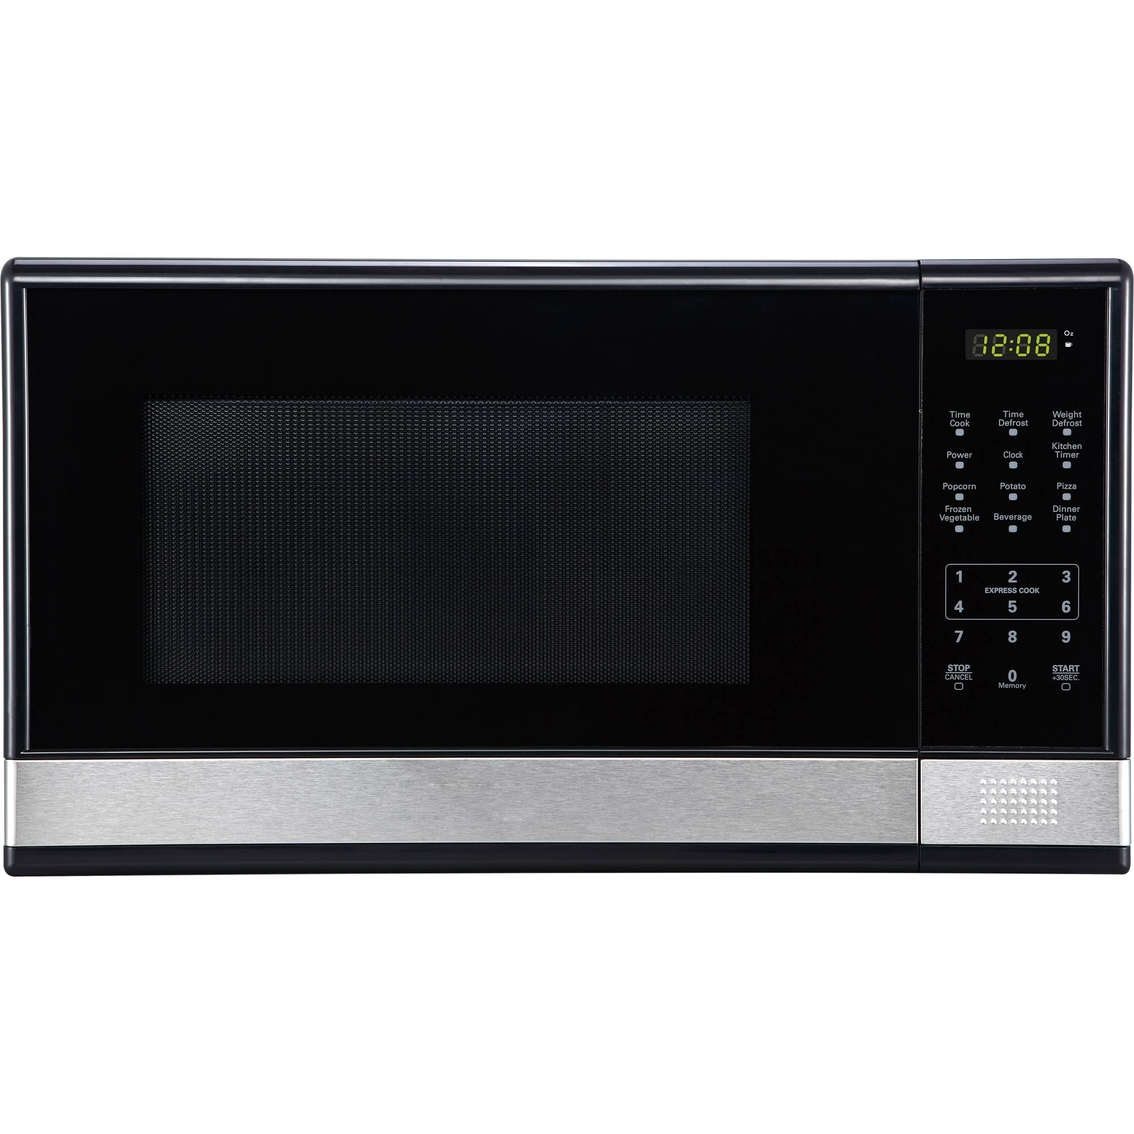 Simply Perfect 1 1cf Microwave Oven